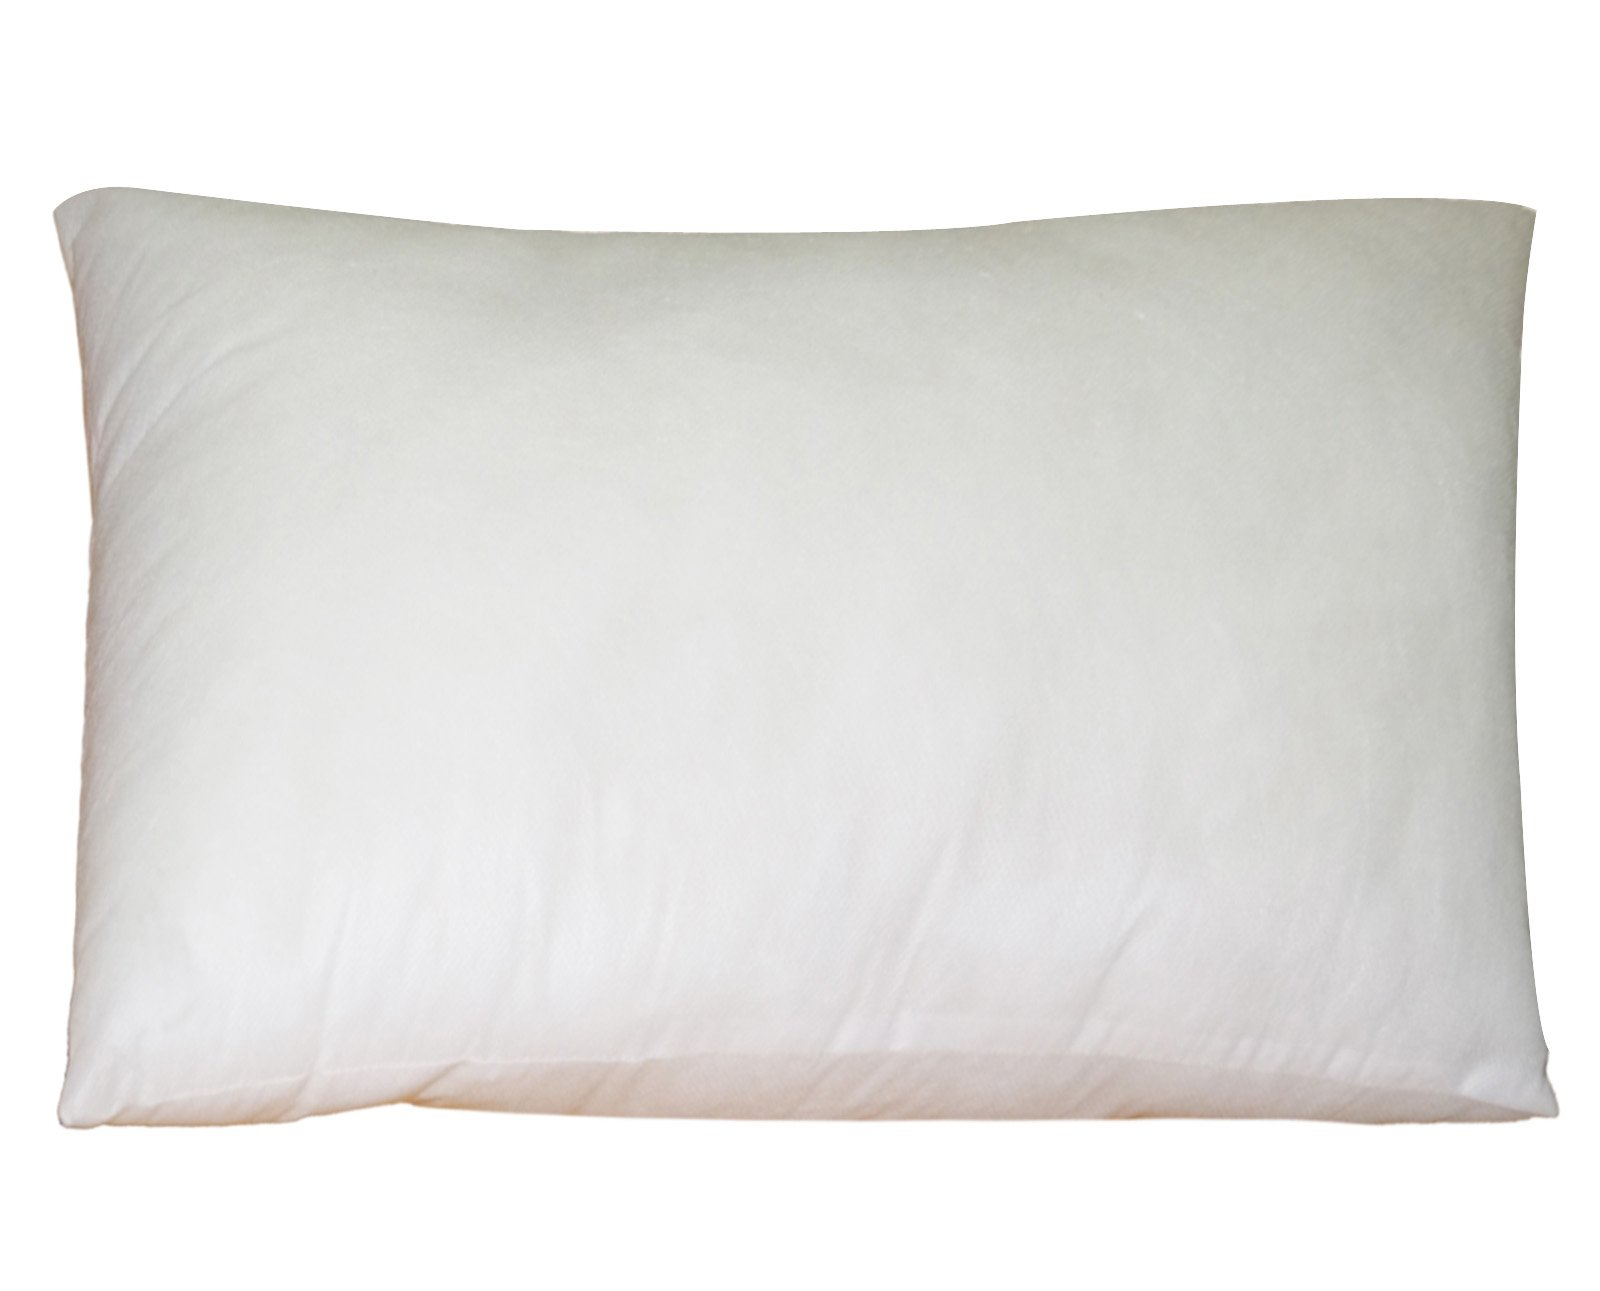 Lushomes Rectangle Cushion Filler White Pillow Insert 16 x 20 Inches - Packs Available by LUSHOMES